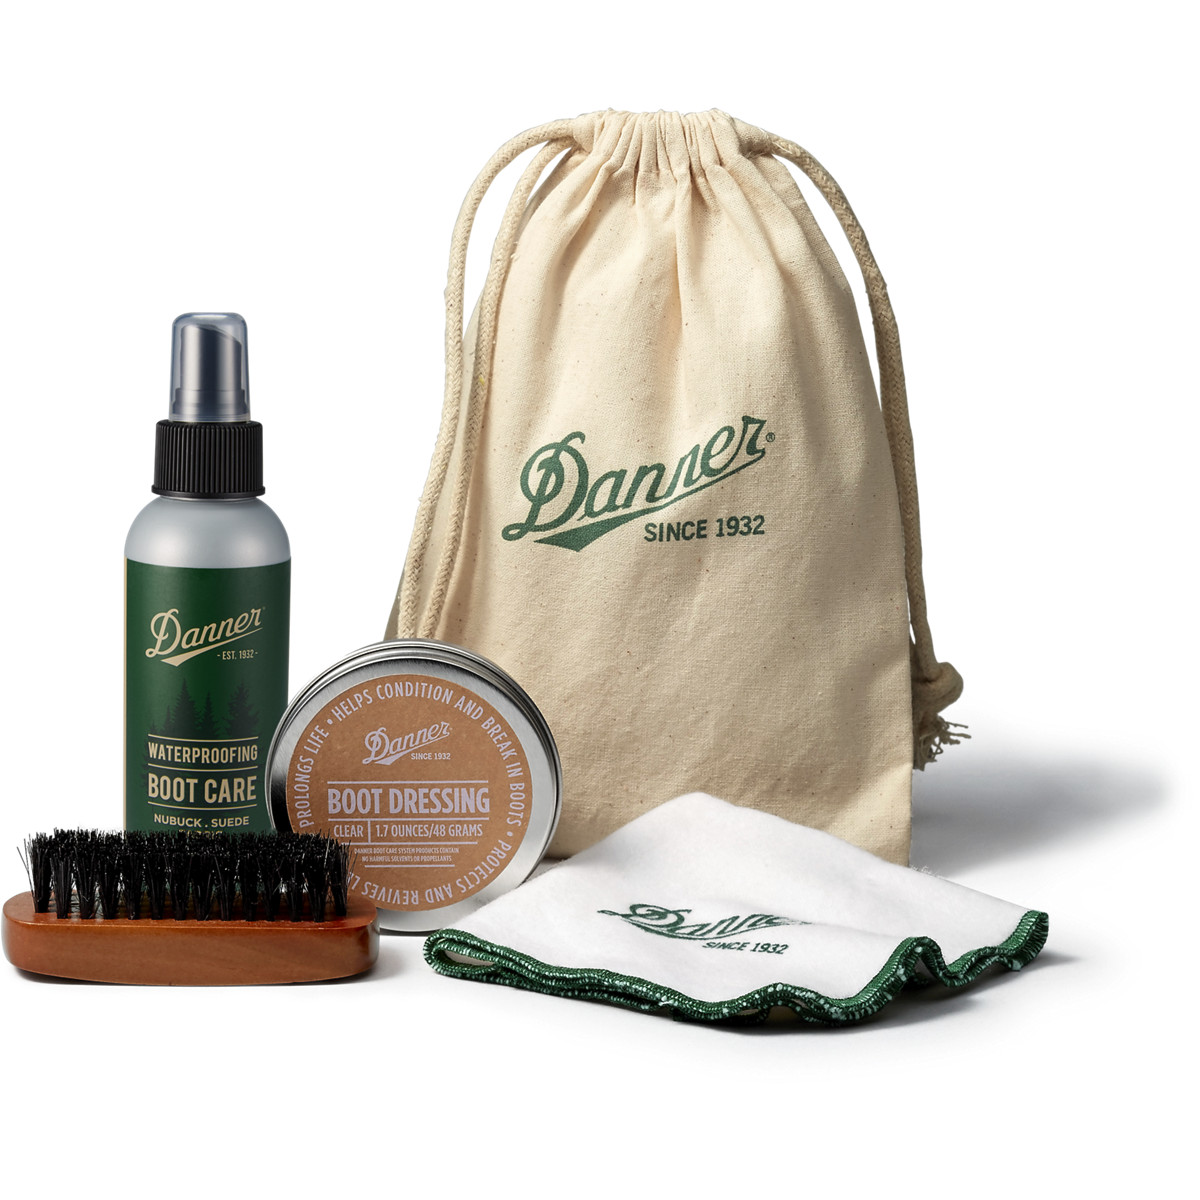 Danner Boot Care Kit - Essential